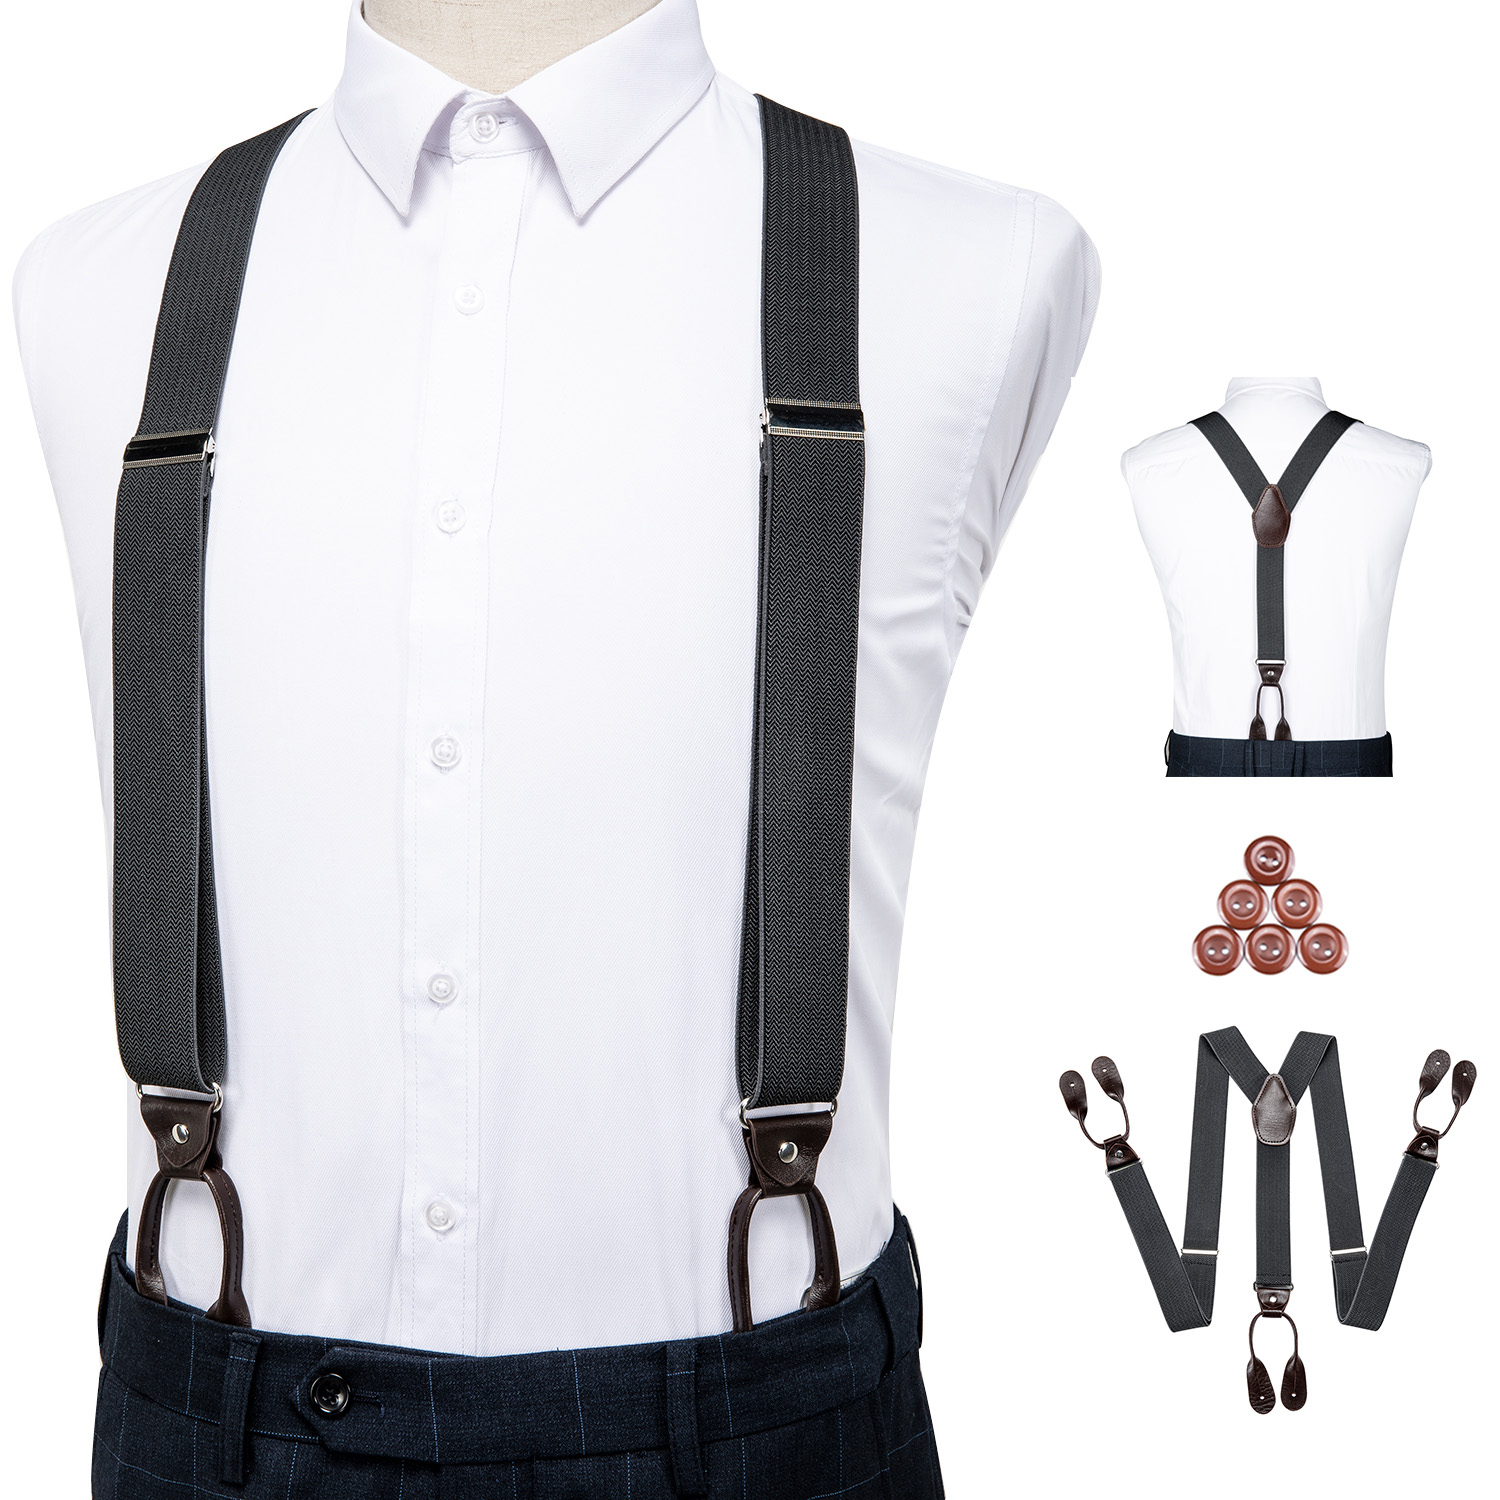 Unisex Vintage Suspenders Men Braces Adjustable 6 Button Suspender Elastic Y-Shape Strap Pants Trousers Gray Leather PU DiBanGu